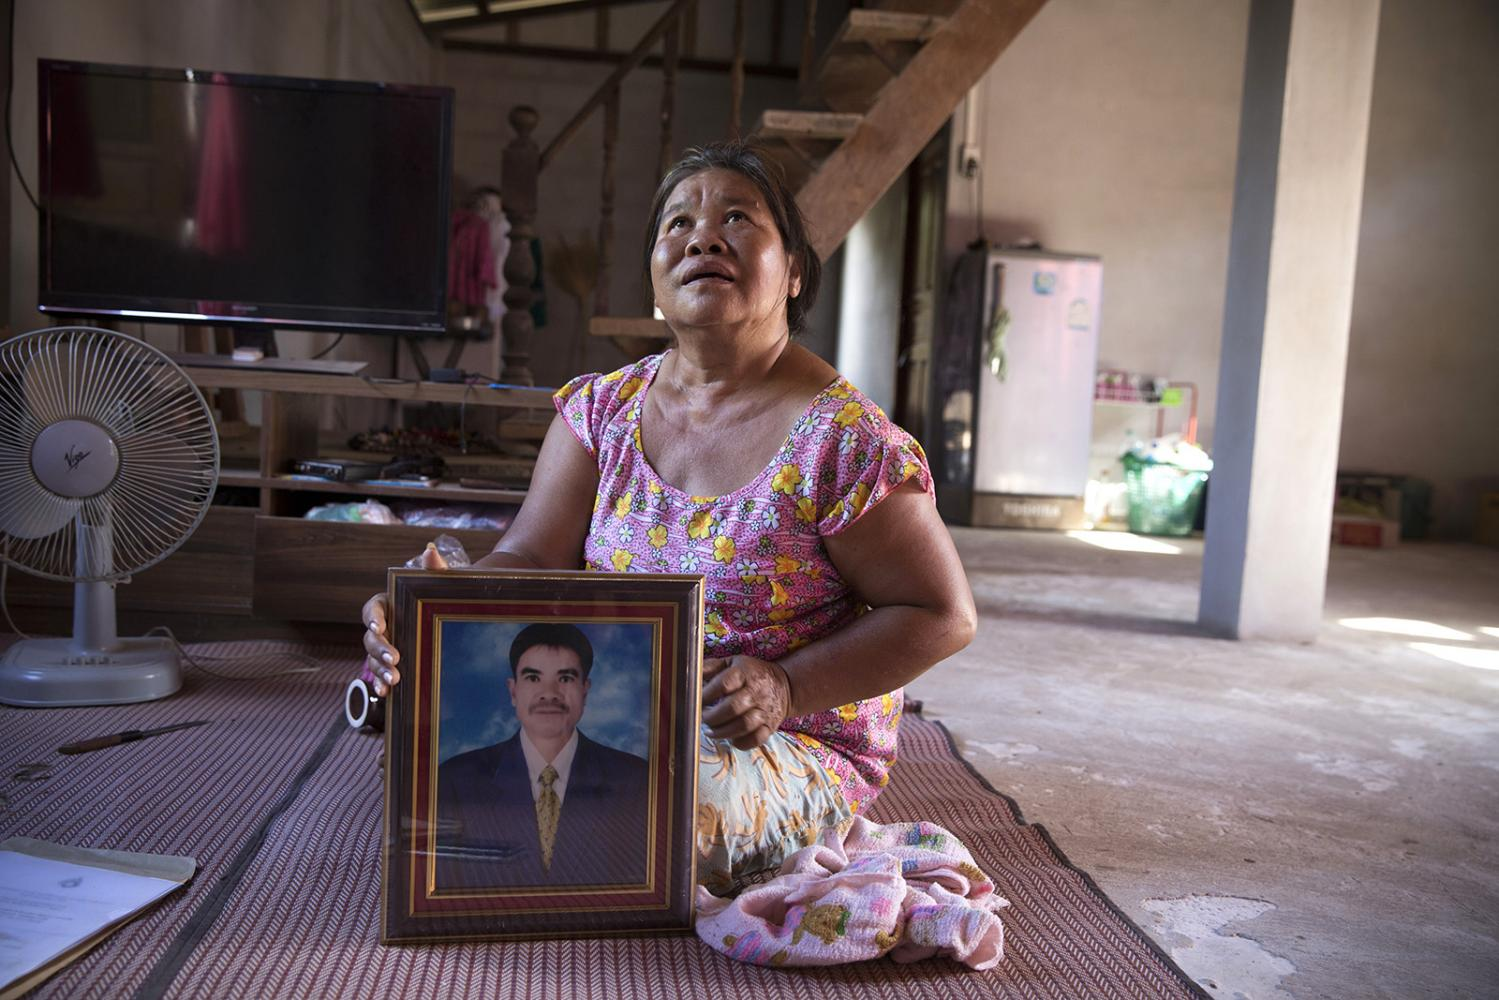 A lady living in Na Nong Bong village shows a portrait of her husband who recently passed away prematurely. Results from a blood test taken by the local health authorities showed that the concentration of arsenic in his blood was above normal.